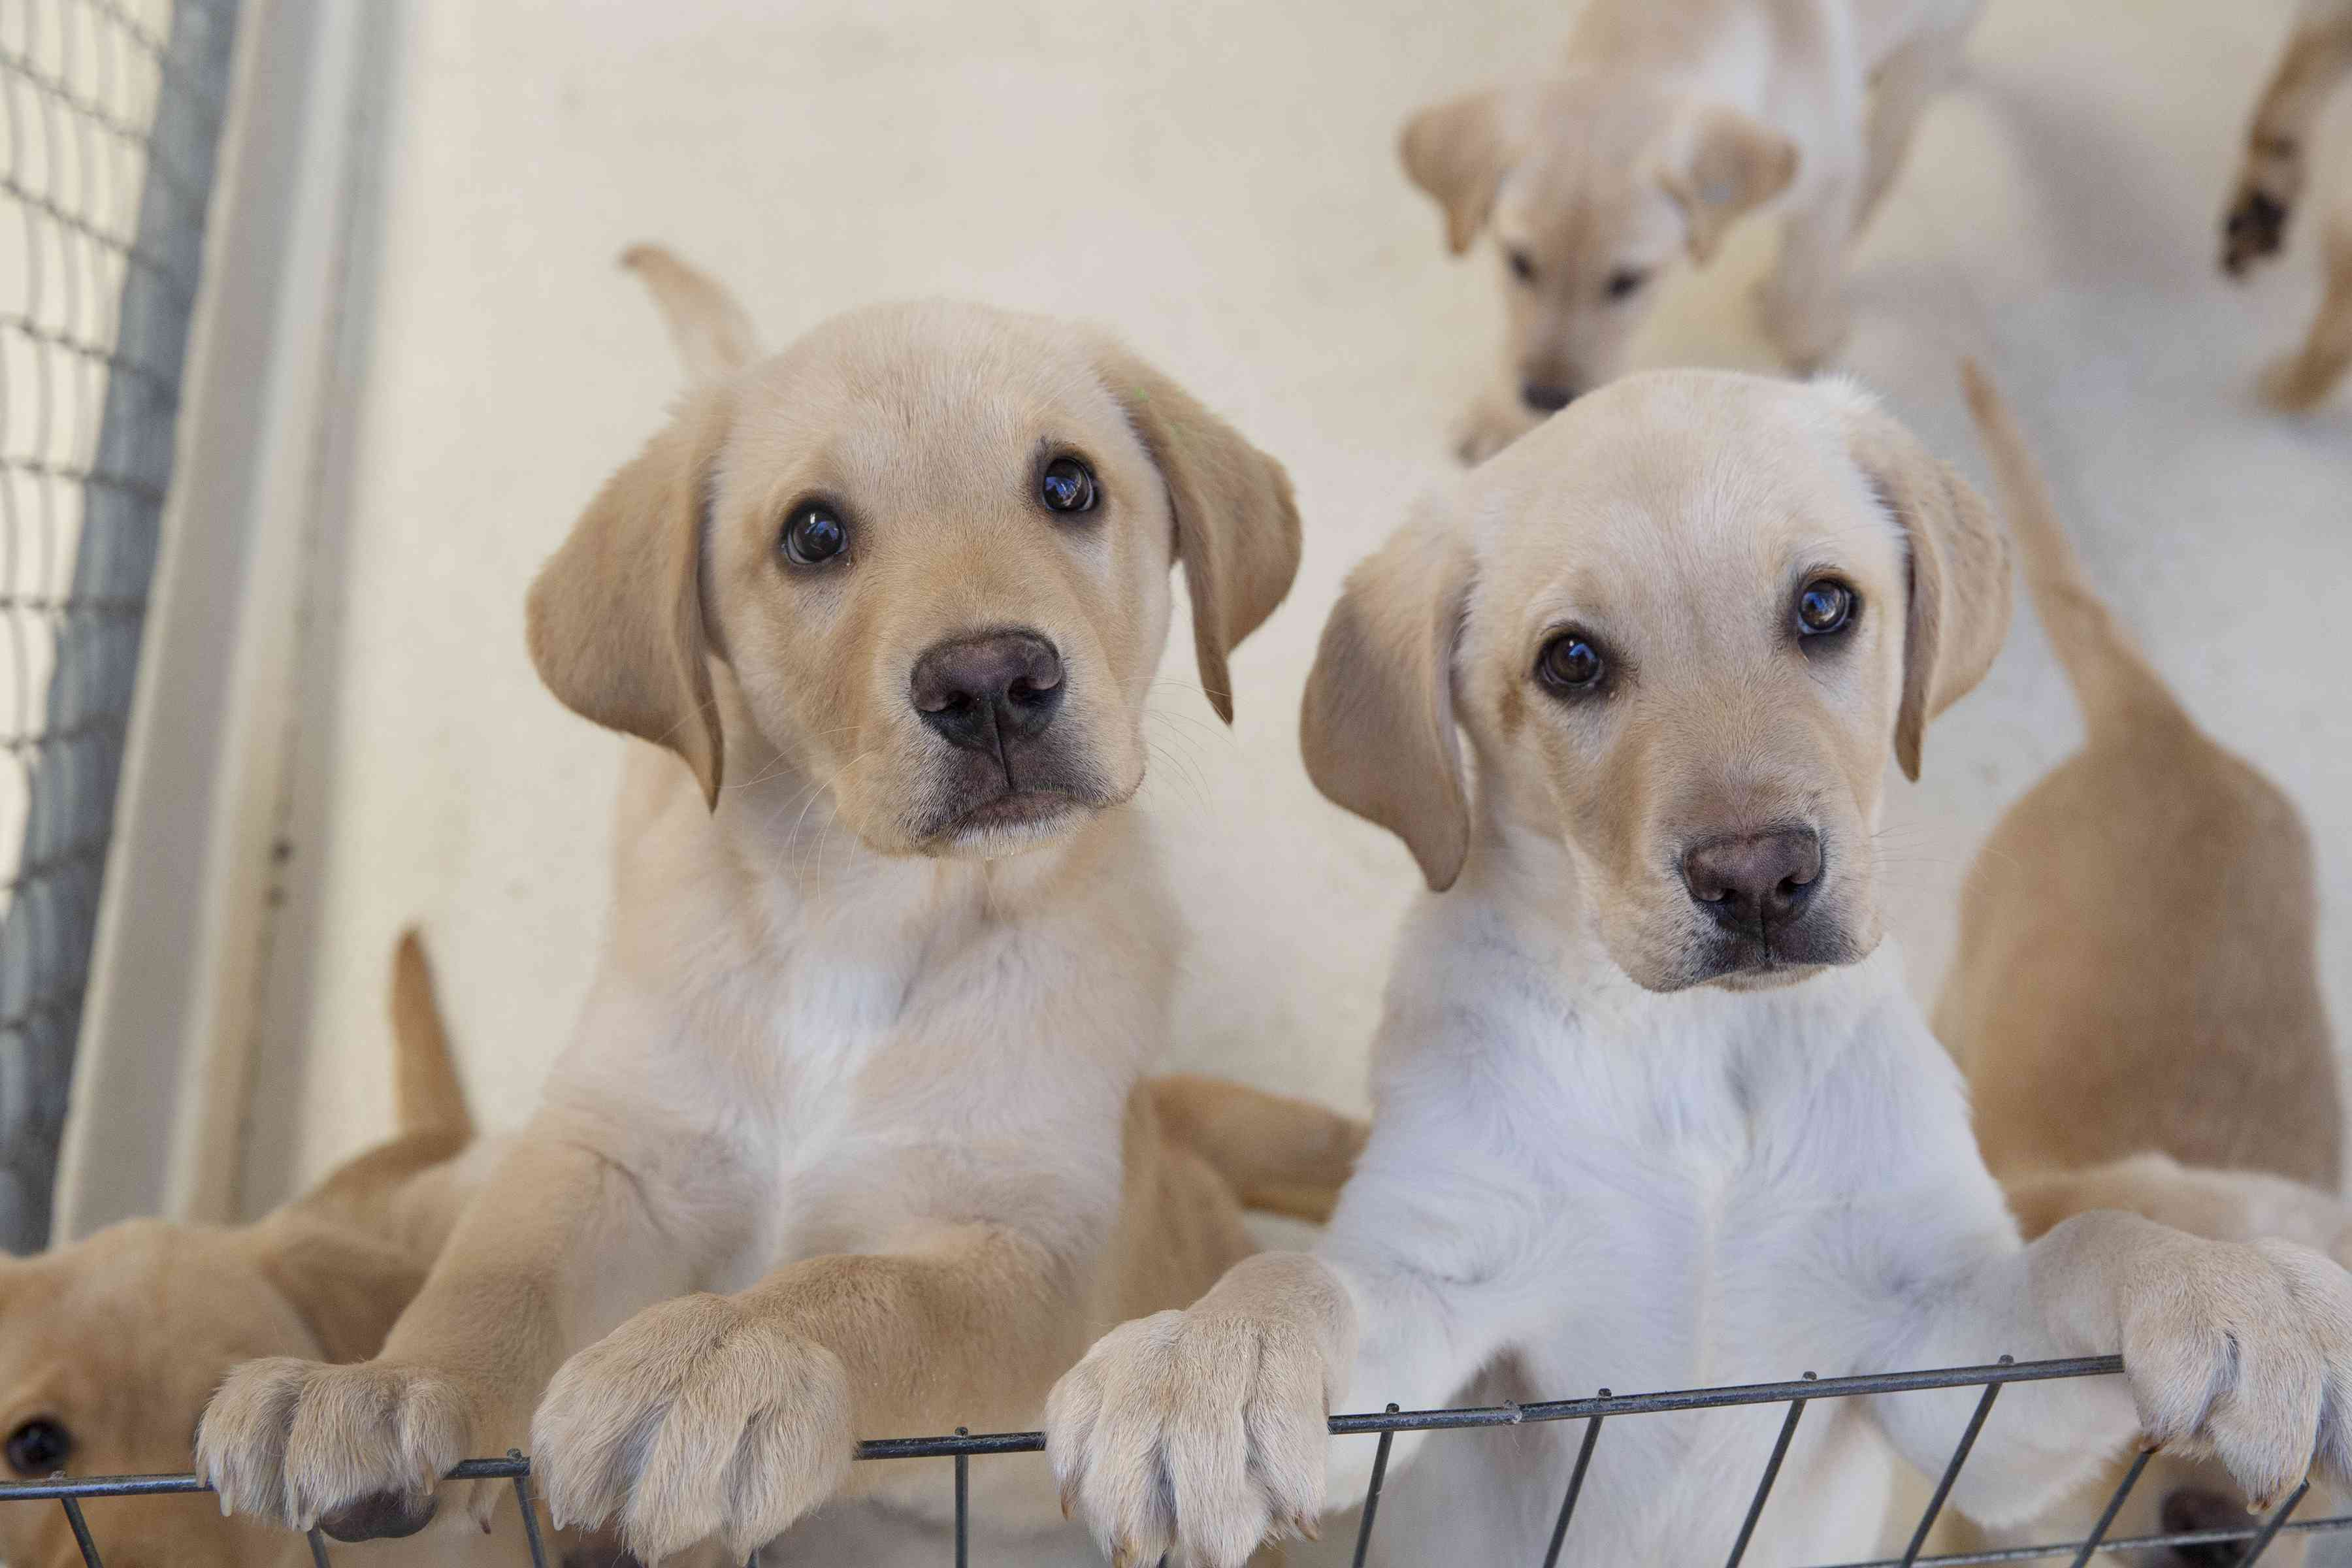 Multiple white and tan labrador puppies looking up and leaning on wire barrier